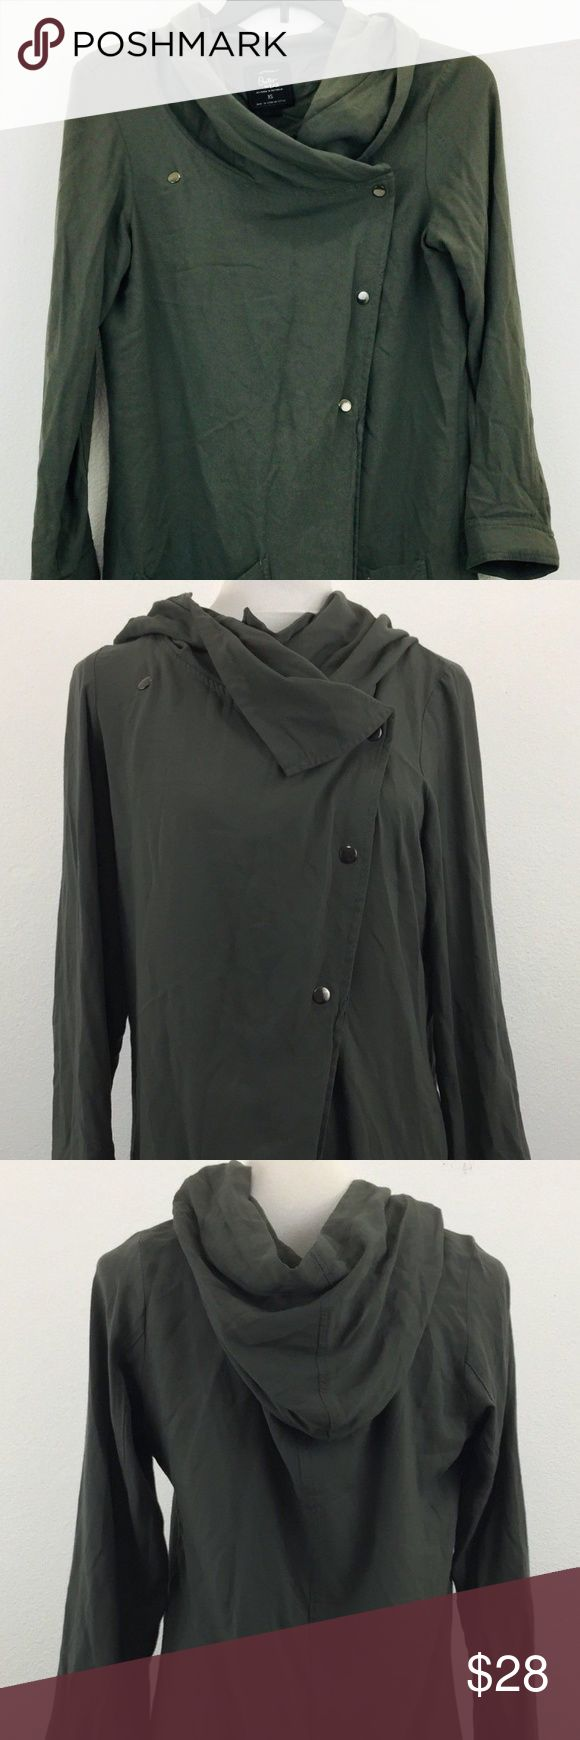 Cotton On Green Snap Close Jacket Hood Super Cute Cotton On Green Snap Close Jacket Hood Outerwear Designed in Australia Women XS Cotton On Jackets & Coats Capes